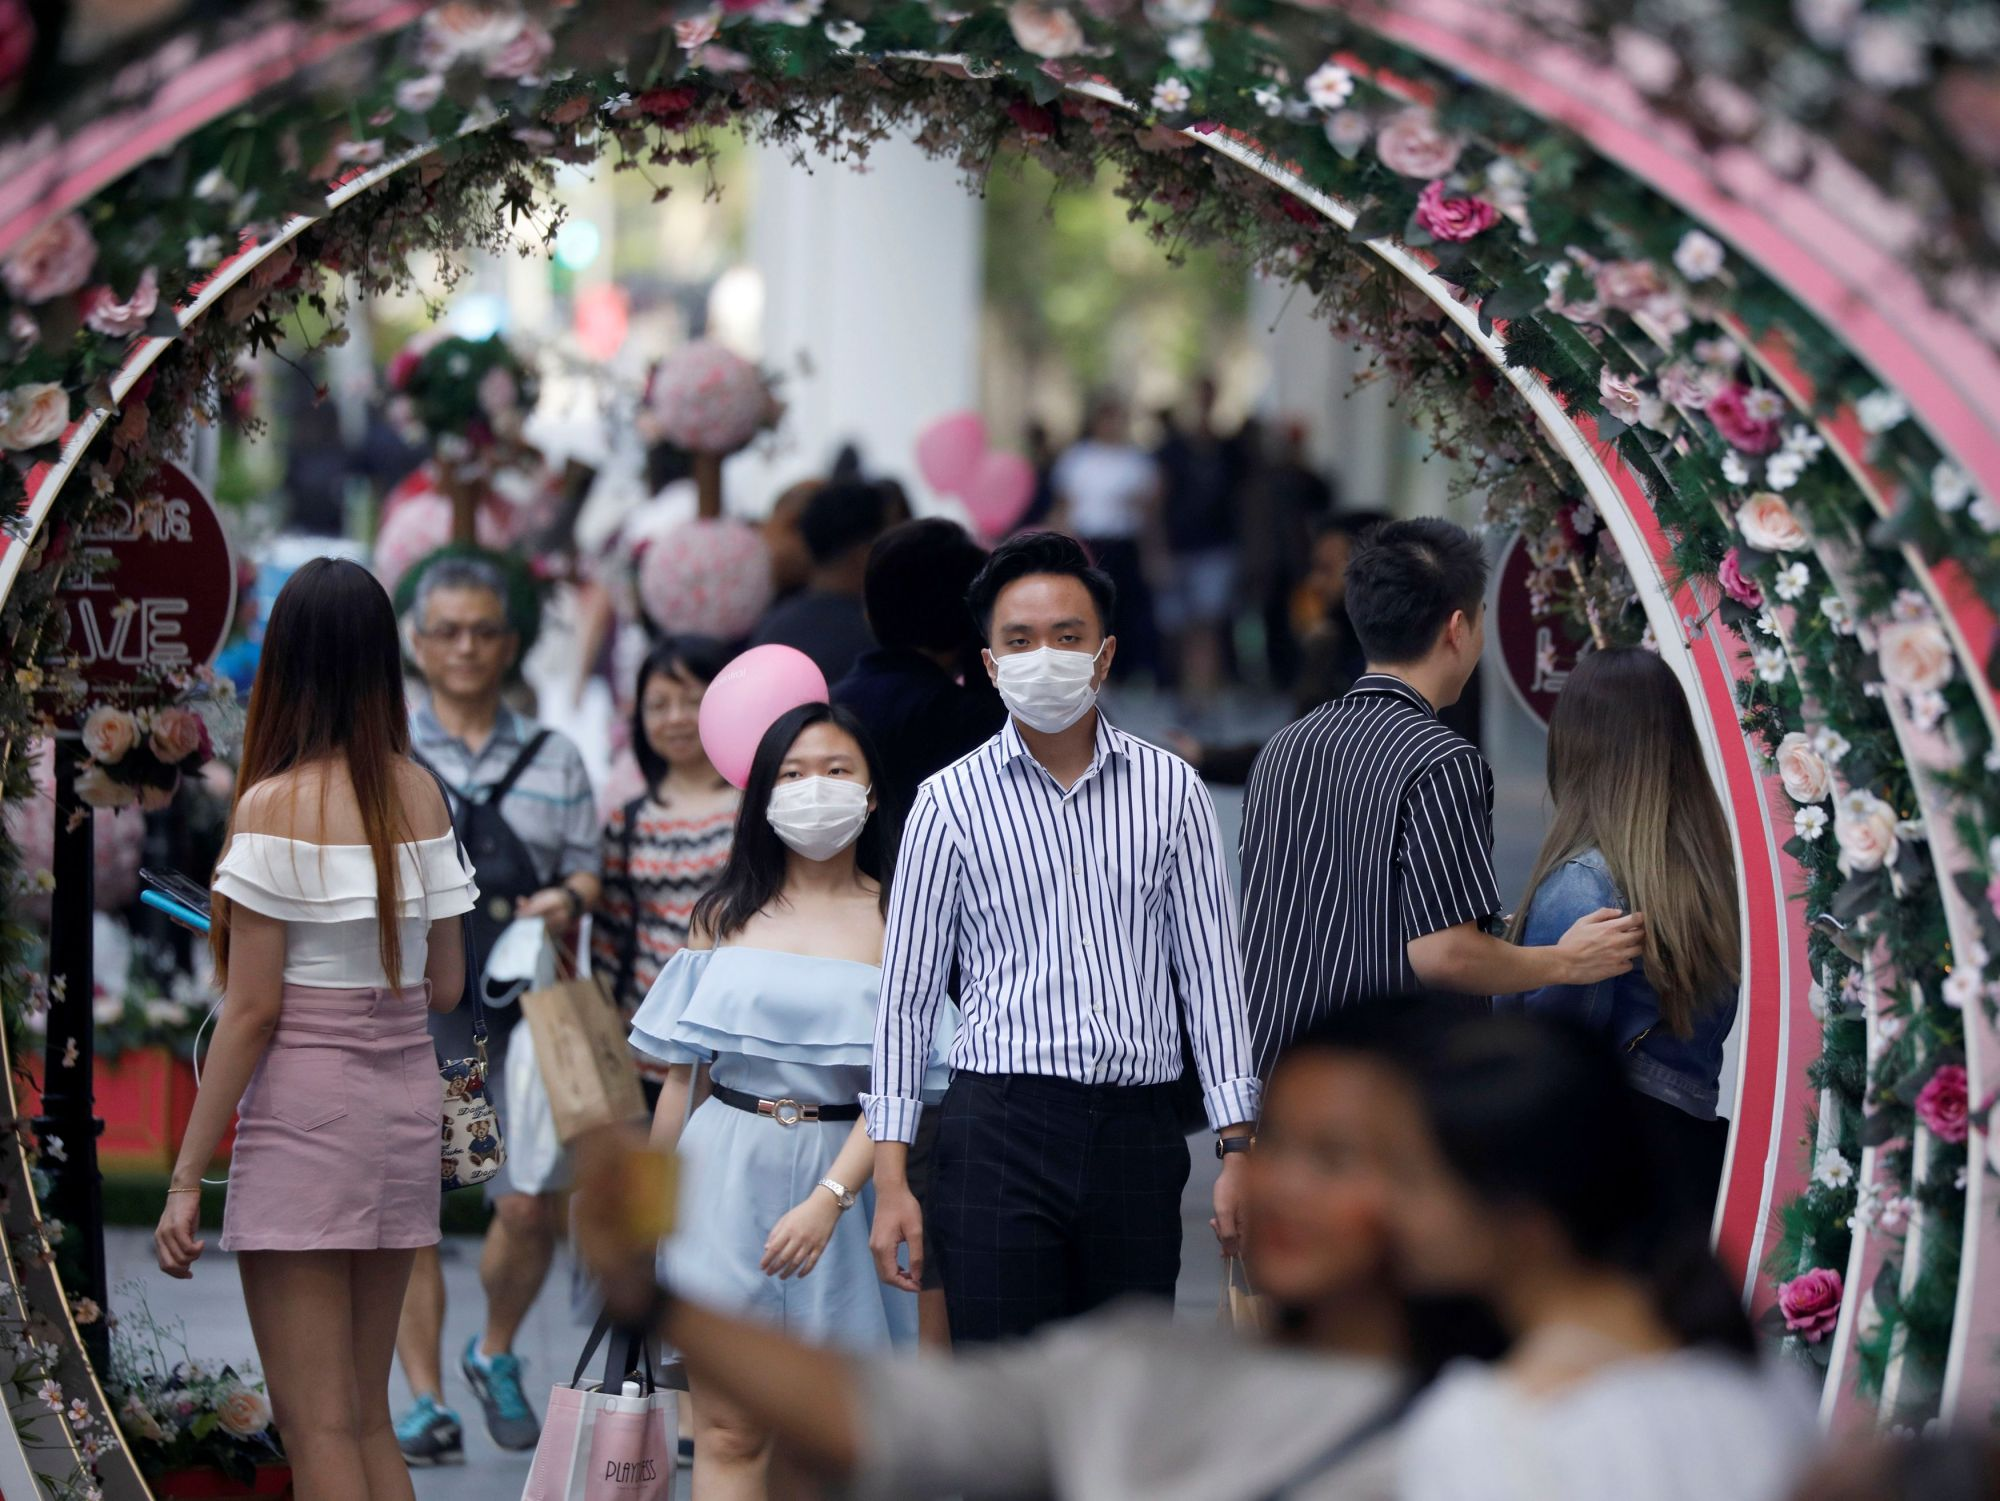 A masked couple celebrate Valentine's Day at Orchard Road in Singapore on Friday.   REUTERS